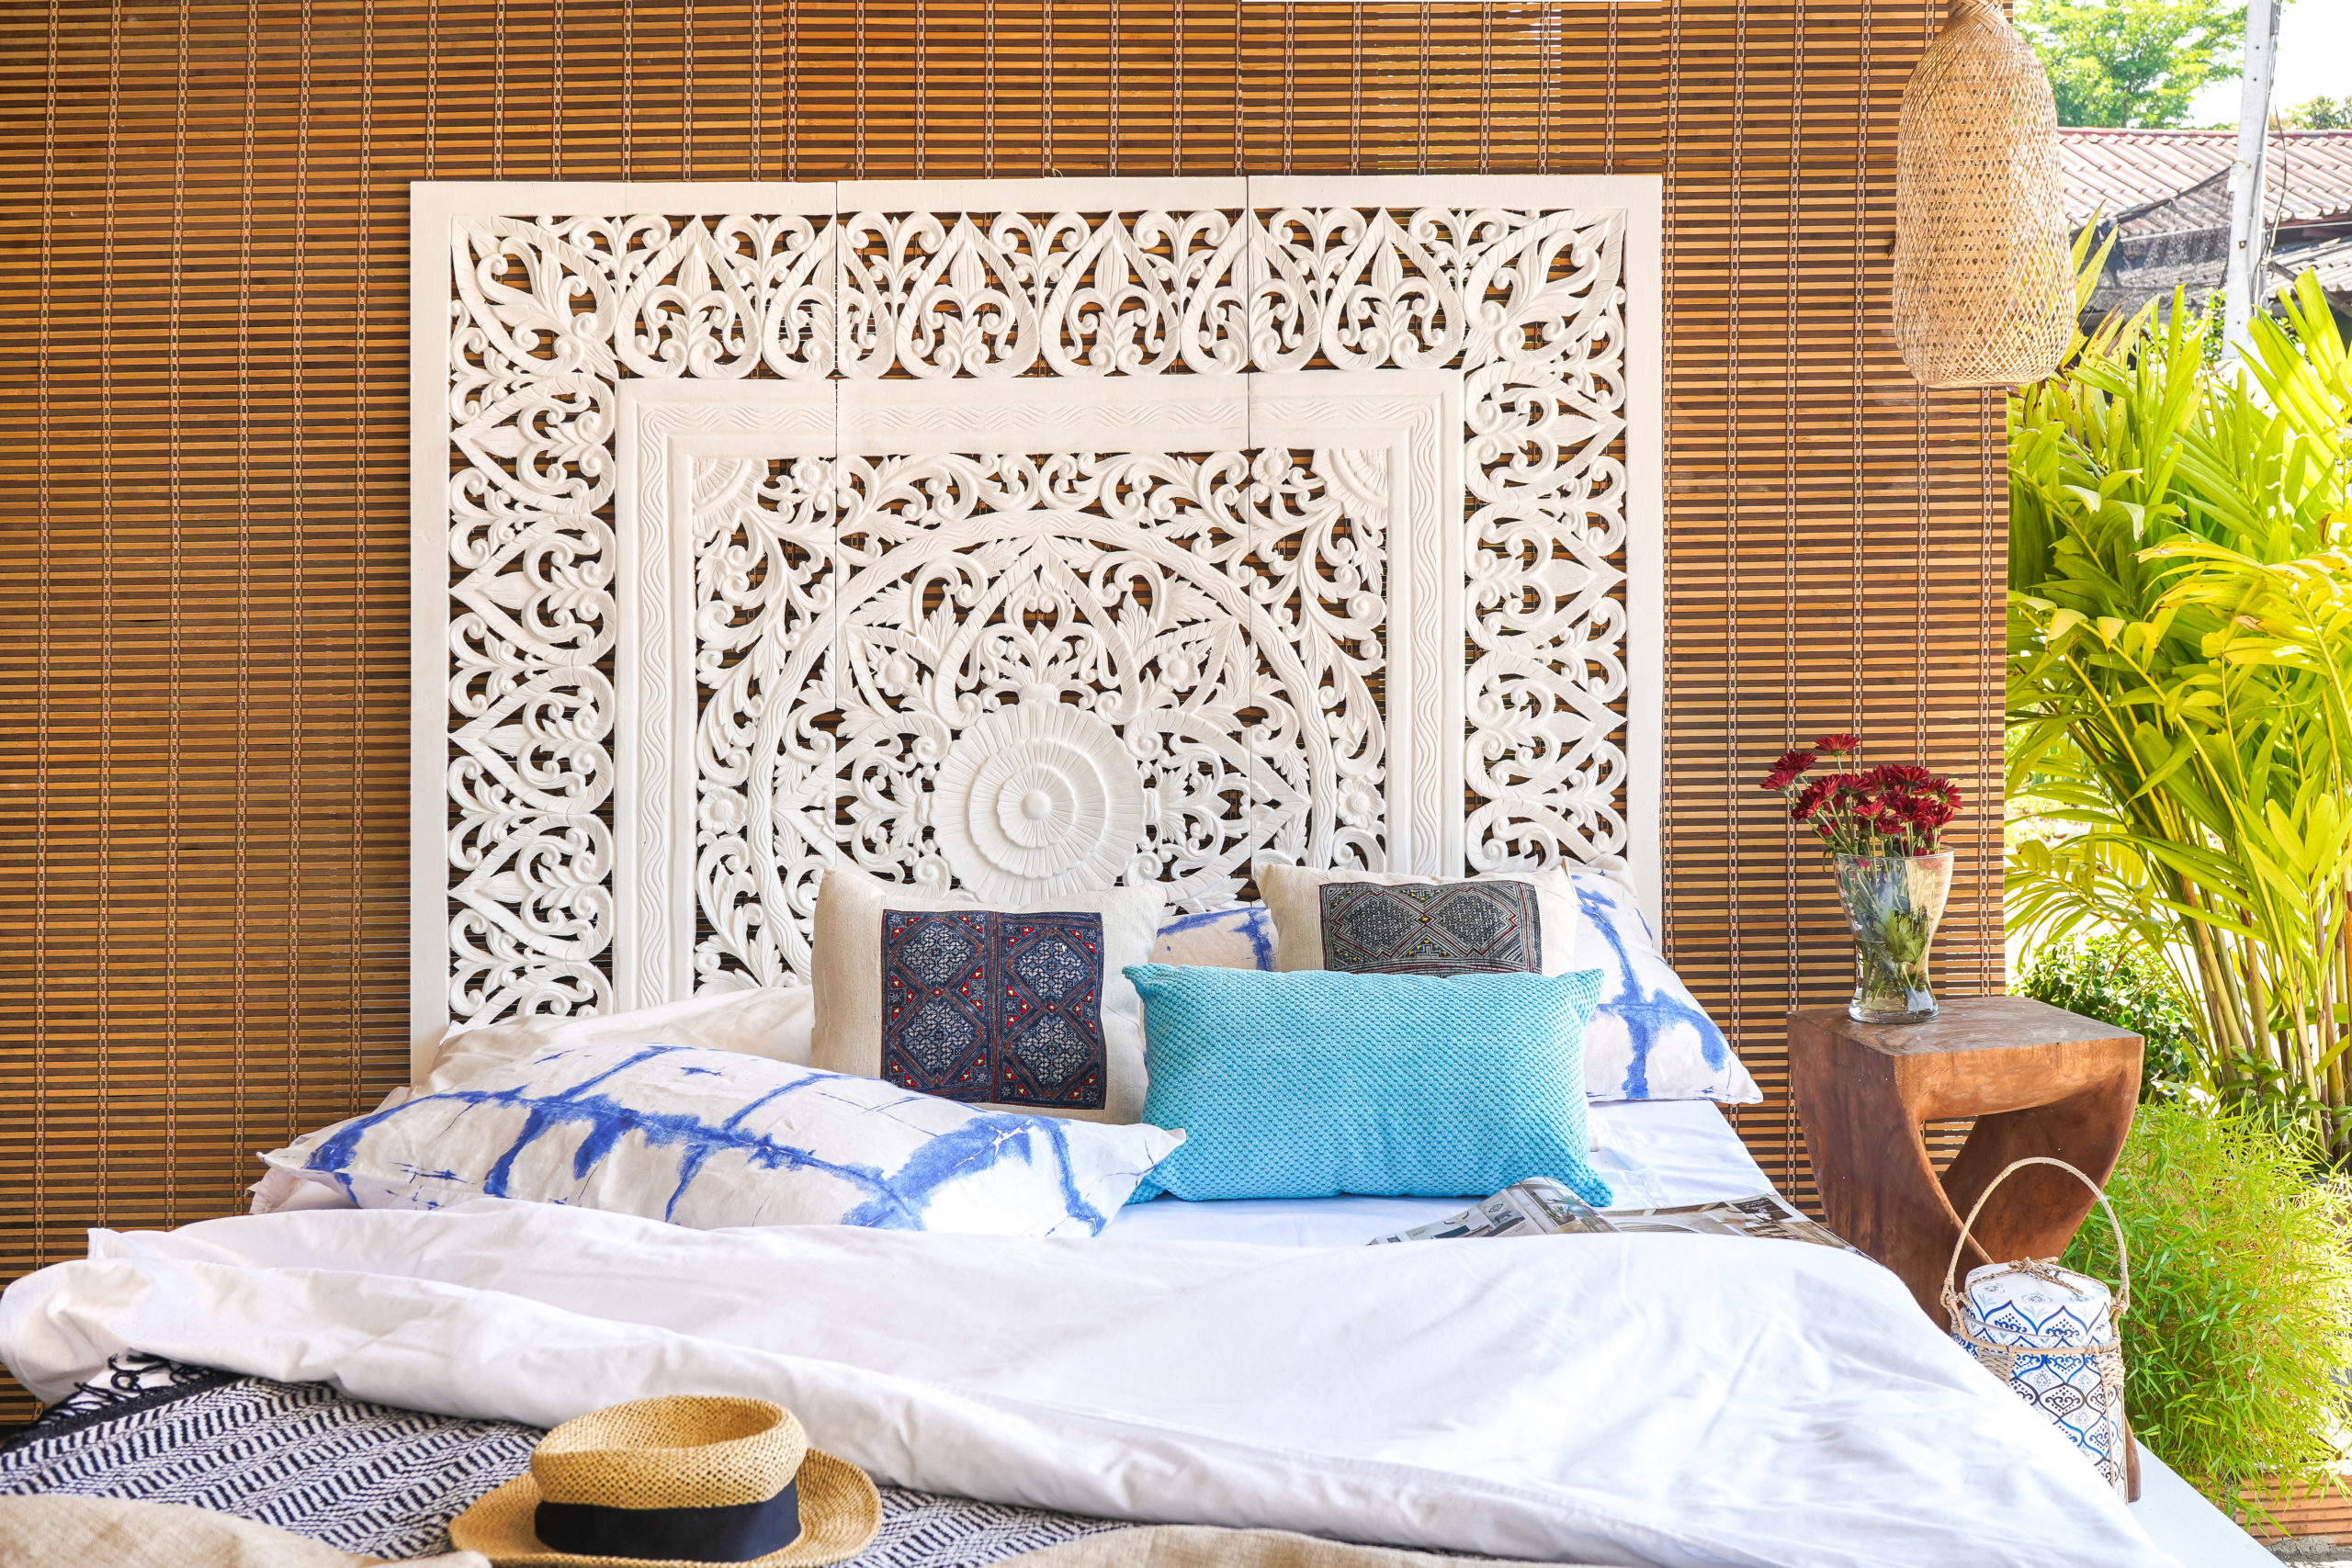 Welcome On Siam Sawadee Carved Headboards And Wooden Wall Art